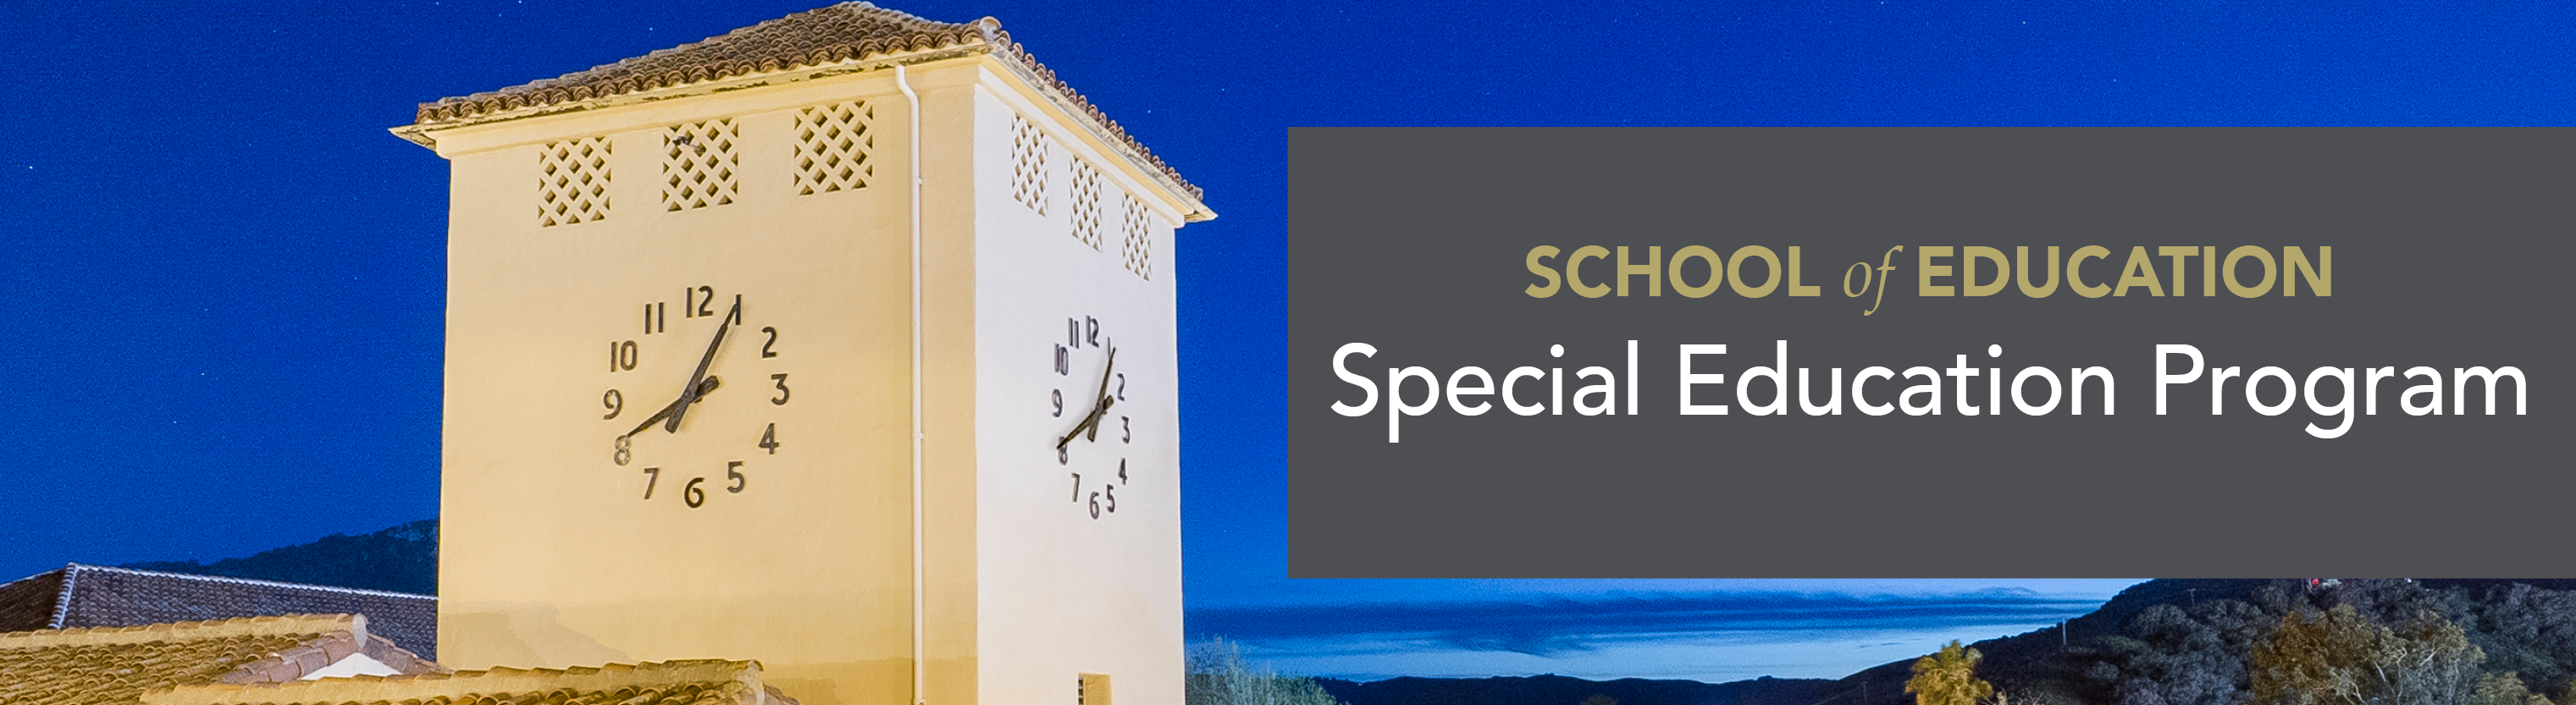 Special Education Program Review Launchpad School Of Education